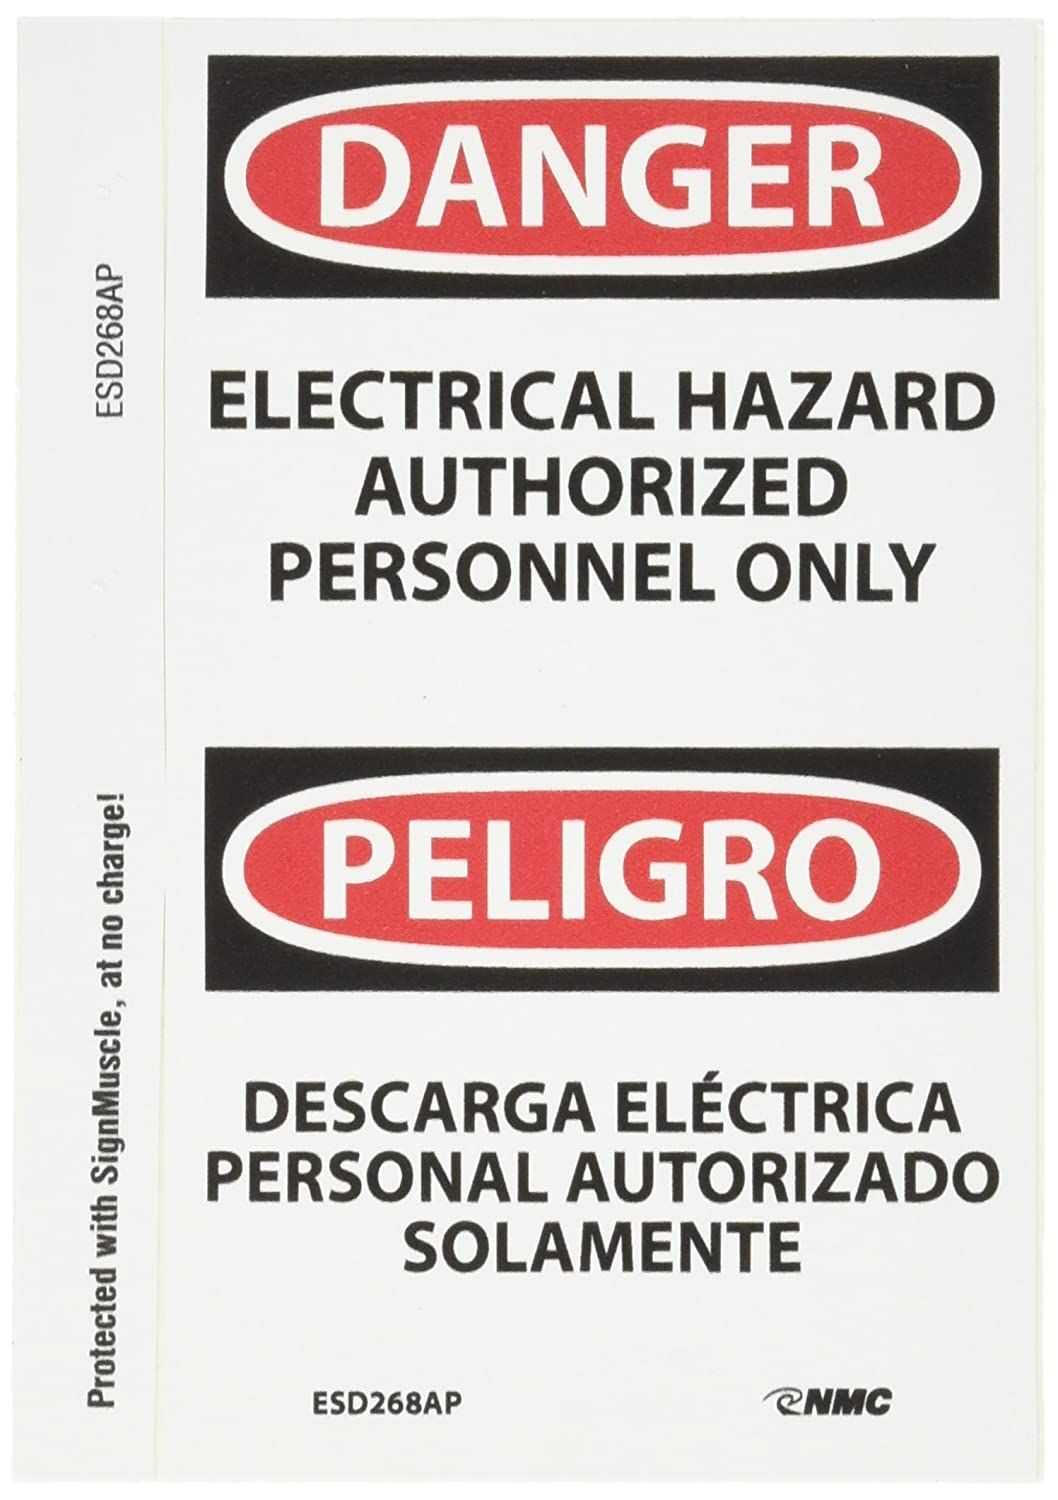 NMC ESD268AP Bilingual OSHA Sign Legend DANGER Black//Red on White ELECTRICAL HAZARD AUTHORIZED PERSONNEL ONLY 3 Length x 5 Height ELECTRICAL HAZARD AUTHORIZED PERSONNEL ONLY Legend DANGER Pressure Sensitive Vinyl Pack of 5